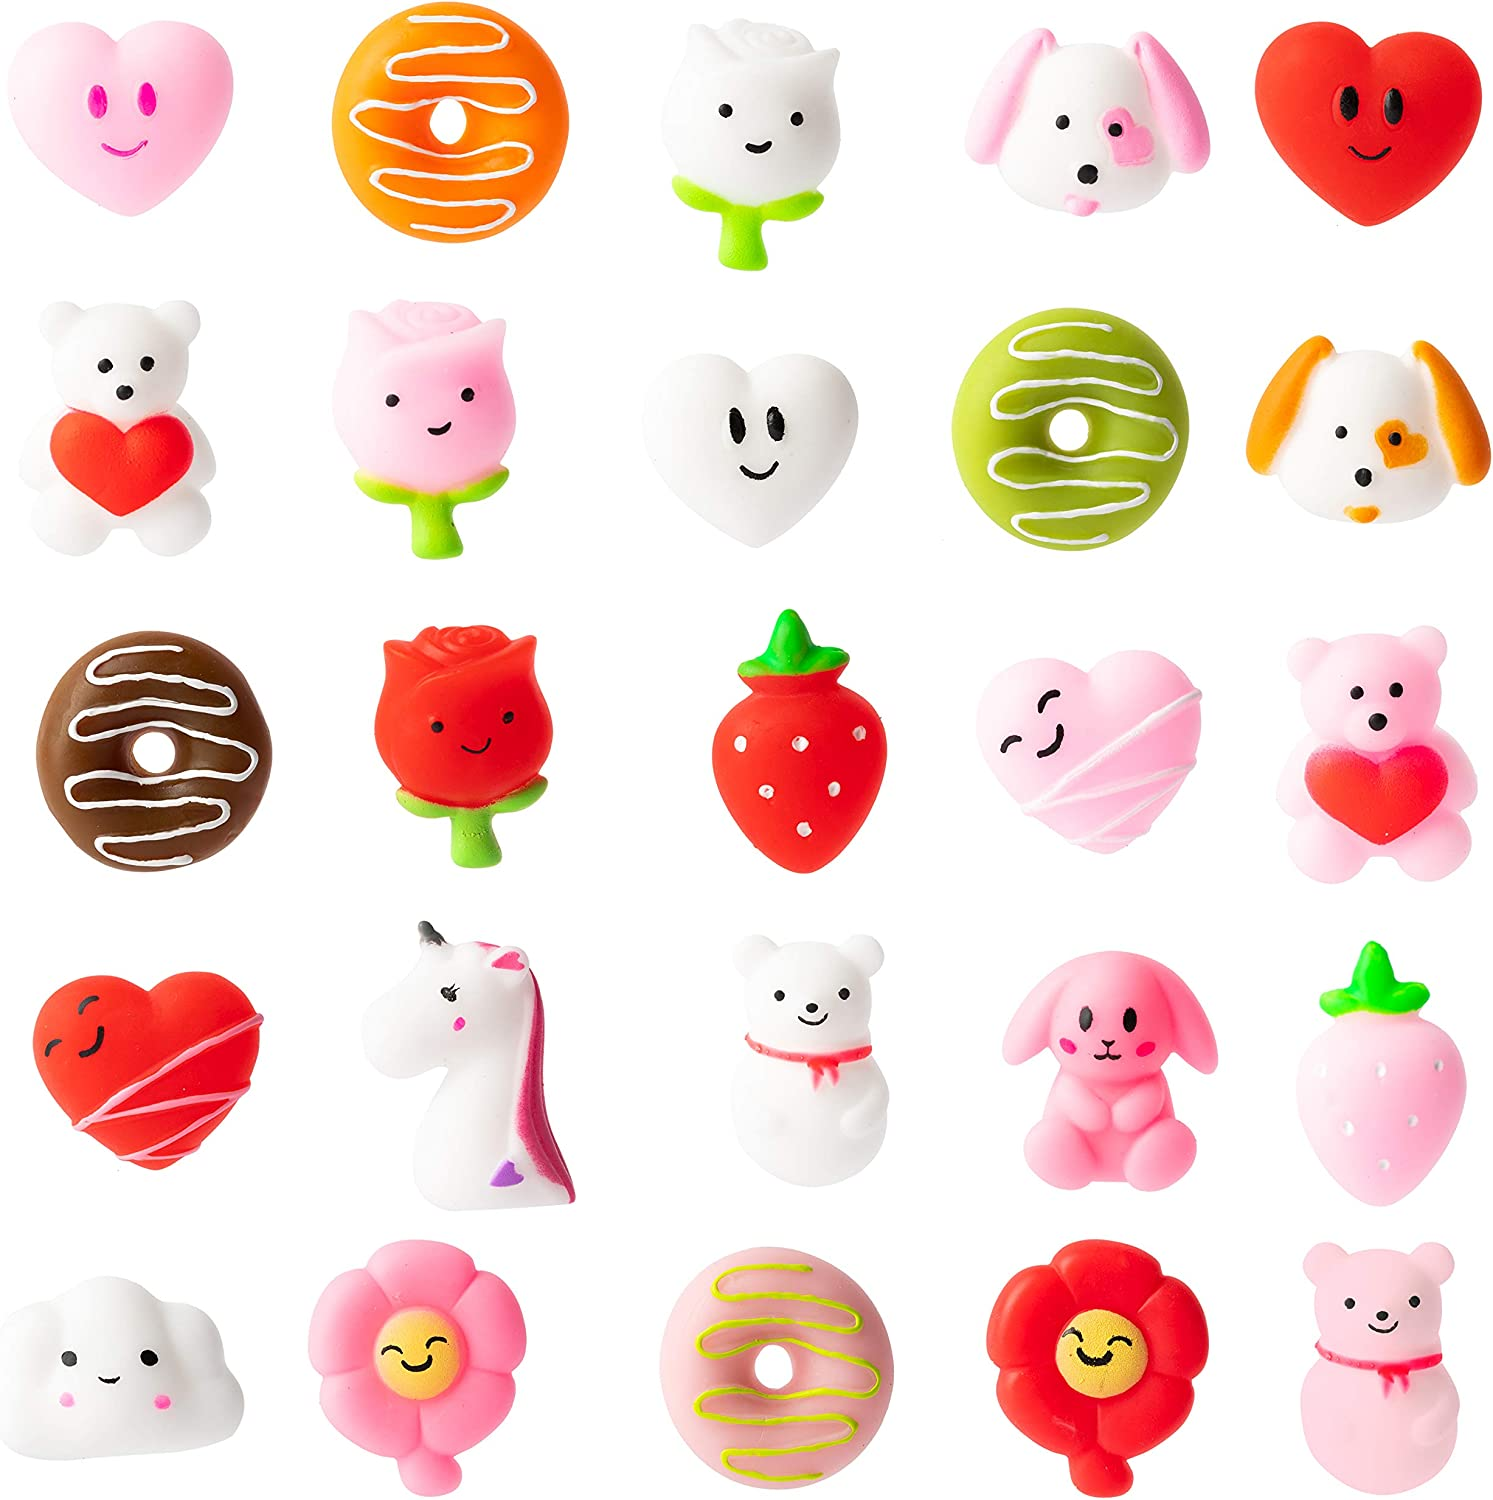 WATINC 25Pcs Mochi Squeeze Toys for Party Favor, Soft Squeeze Heart Donuts Flower Bear Stress Relief Hand Toys, Birthday Gifts,Classroom Decorations, Birthday Party Supplies